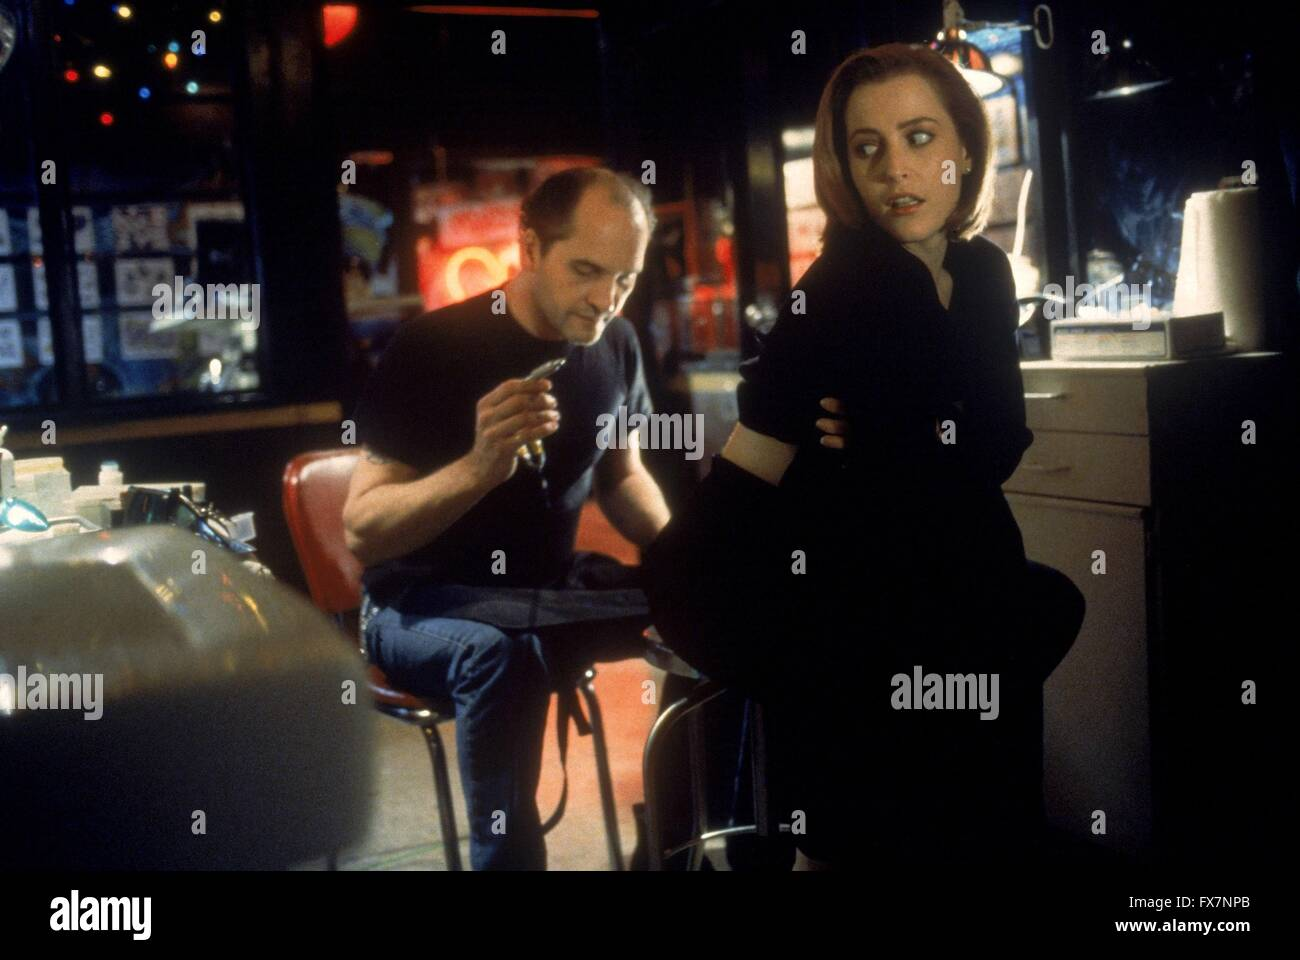 The X Files TV Series 1993 - 2002 USA 1996 Season 4 Created by Chris Carter Gillian Anderson - Stock Image